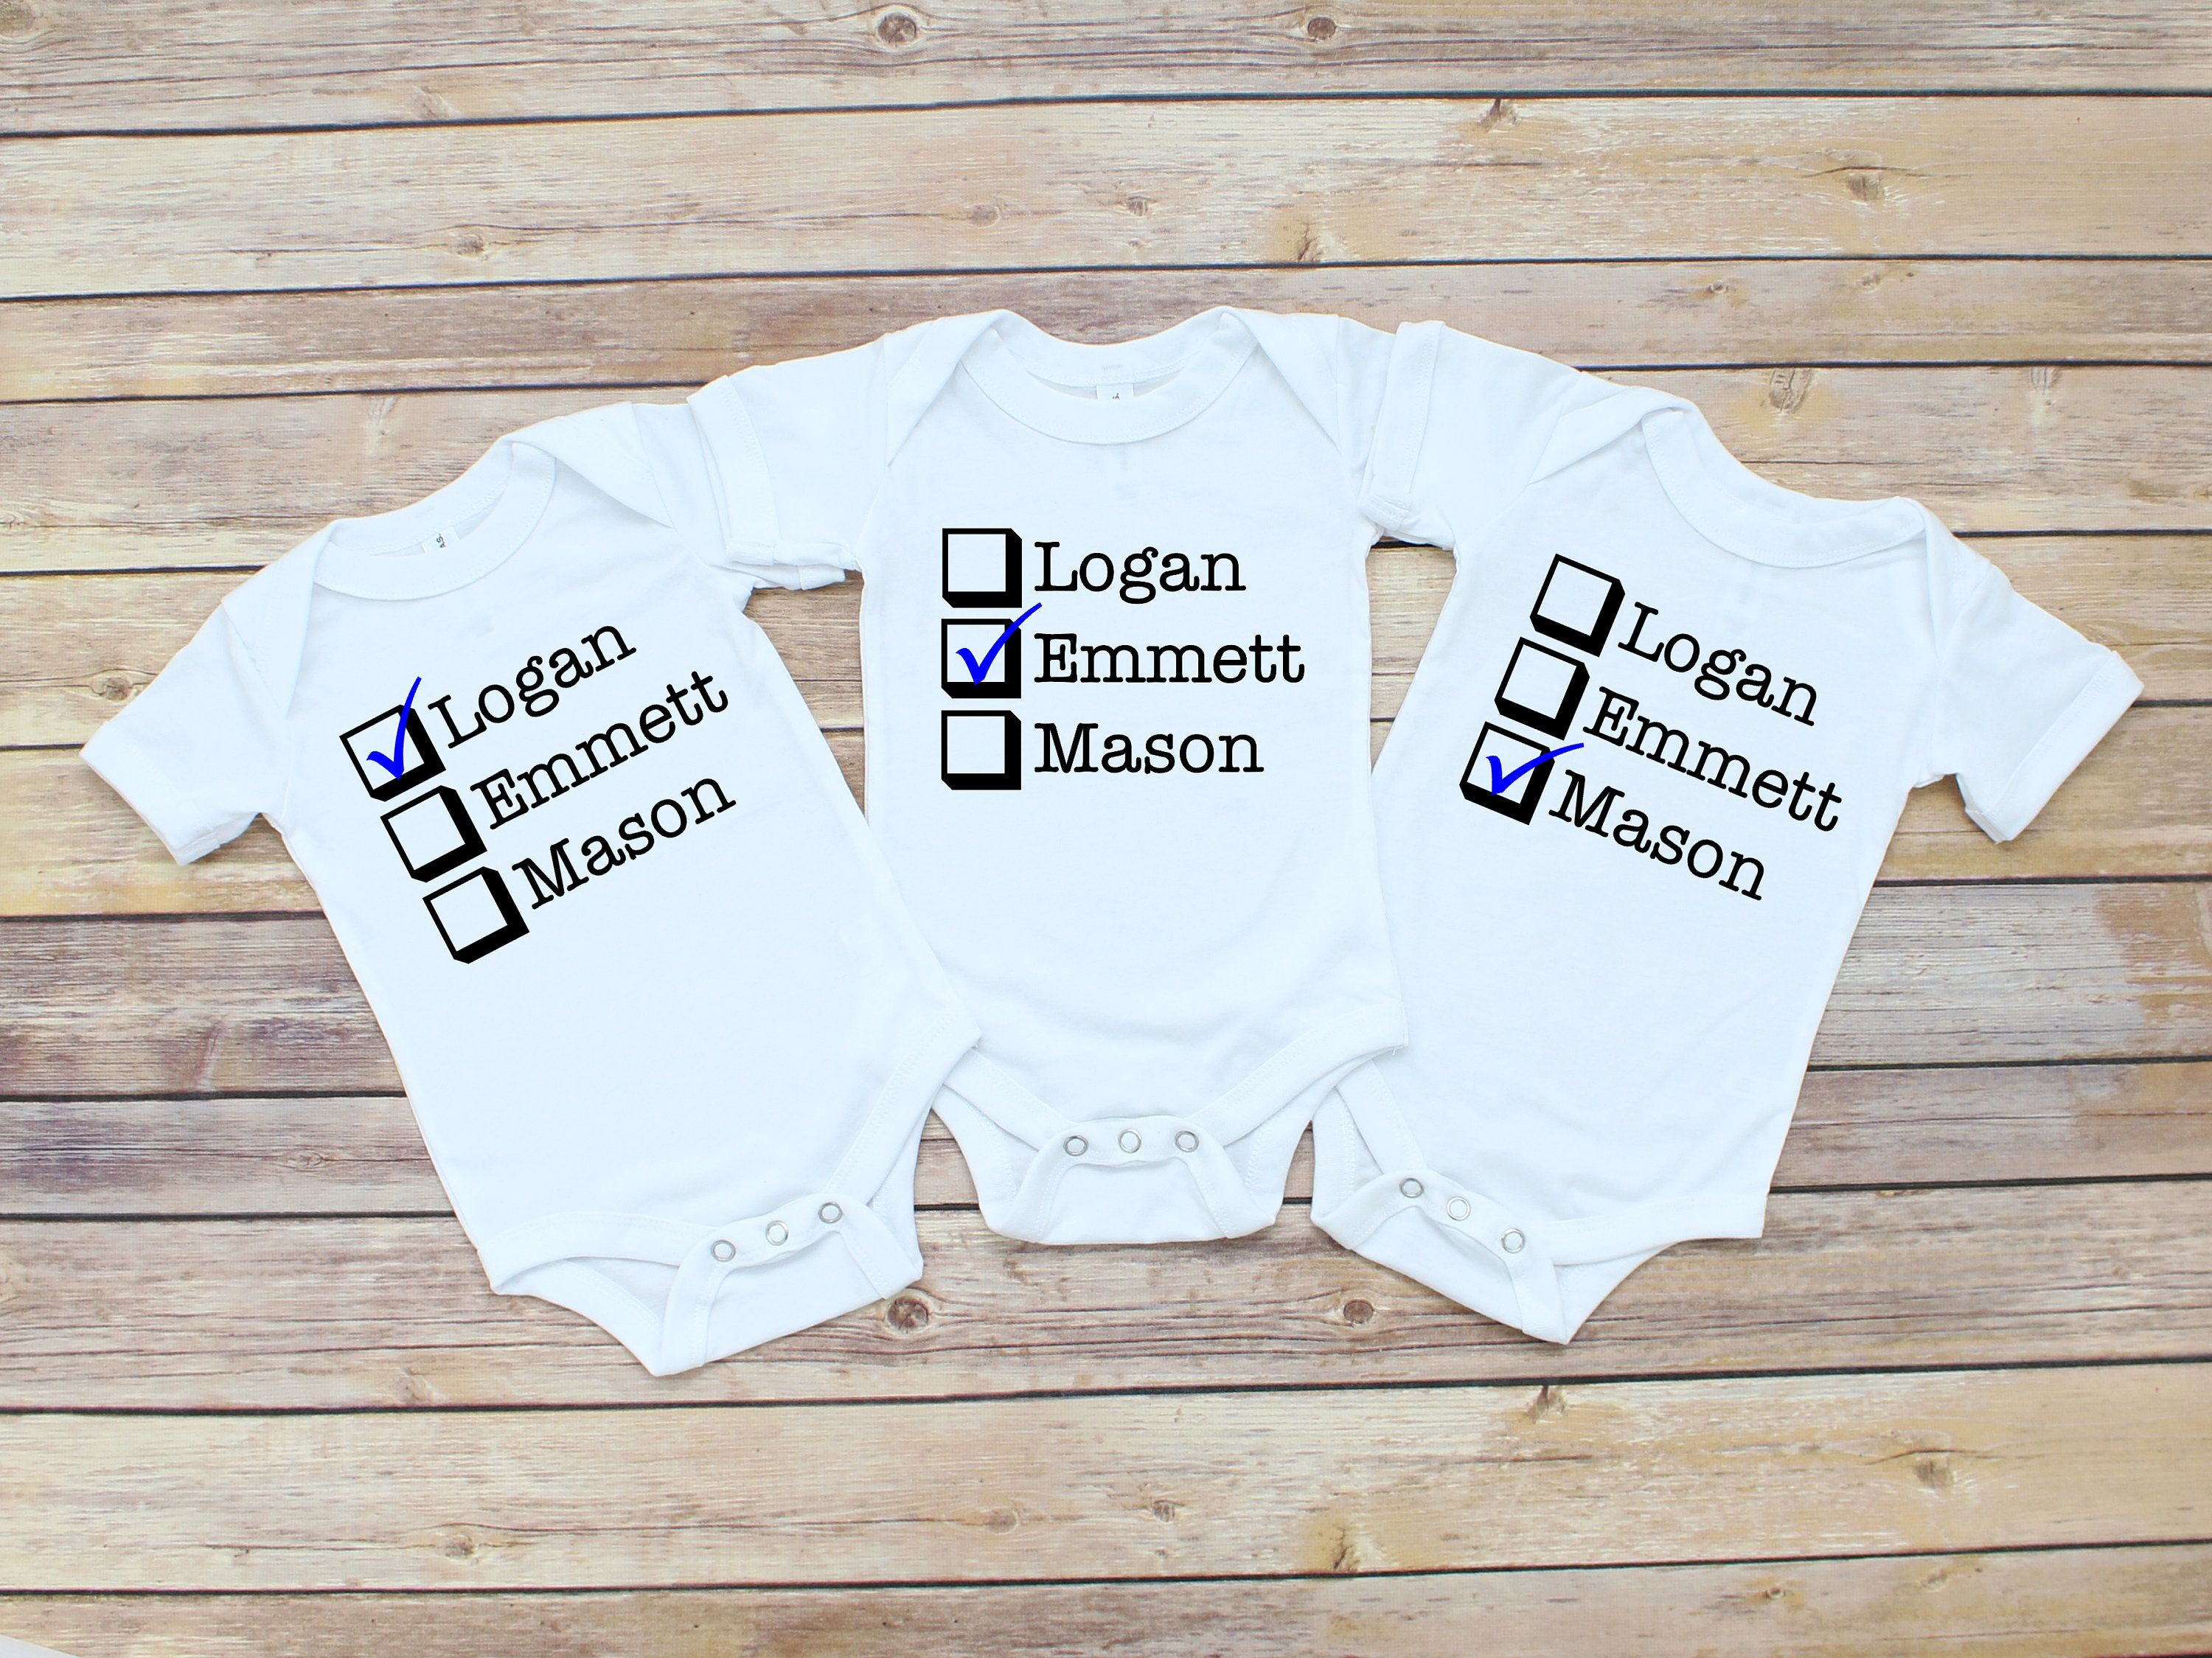 Personalised Name T-Shirts /& Bodysuits Printed Baby Toddler Matching Girls Boys